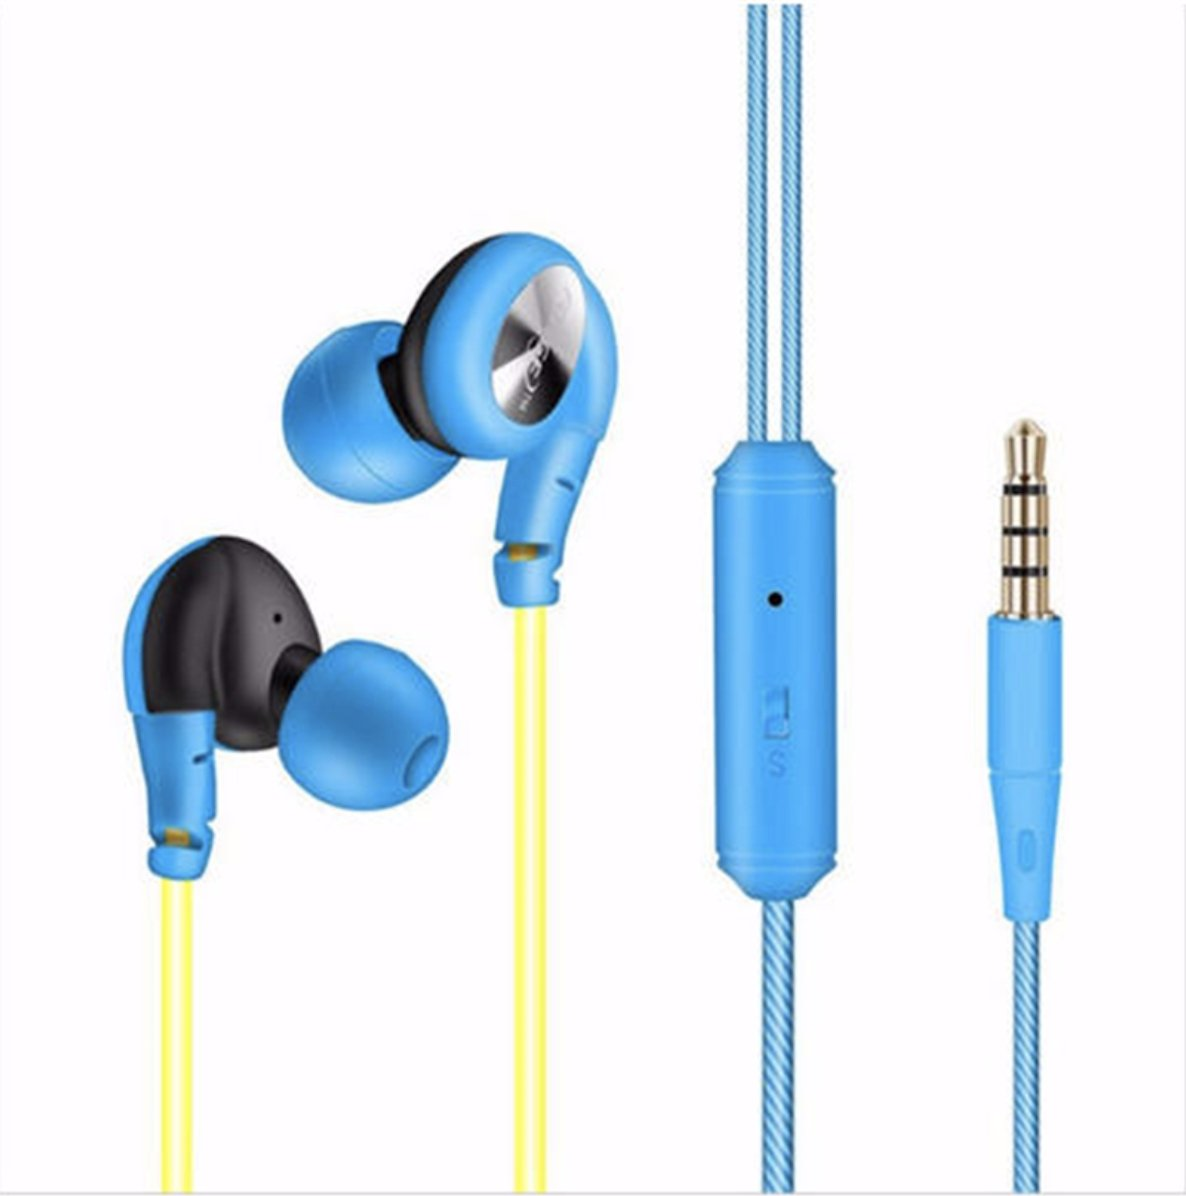 Waterproof Sweatproof Sports Wired Loop-Over Earbuds Earphones with 3.5mm Plug and Mic – HiFi Super Clear Sound for Smartphone, iPhone, iPad, Galaxy, Laptop Computers, Running, Exercise, Gym